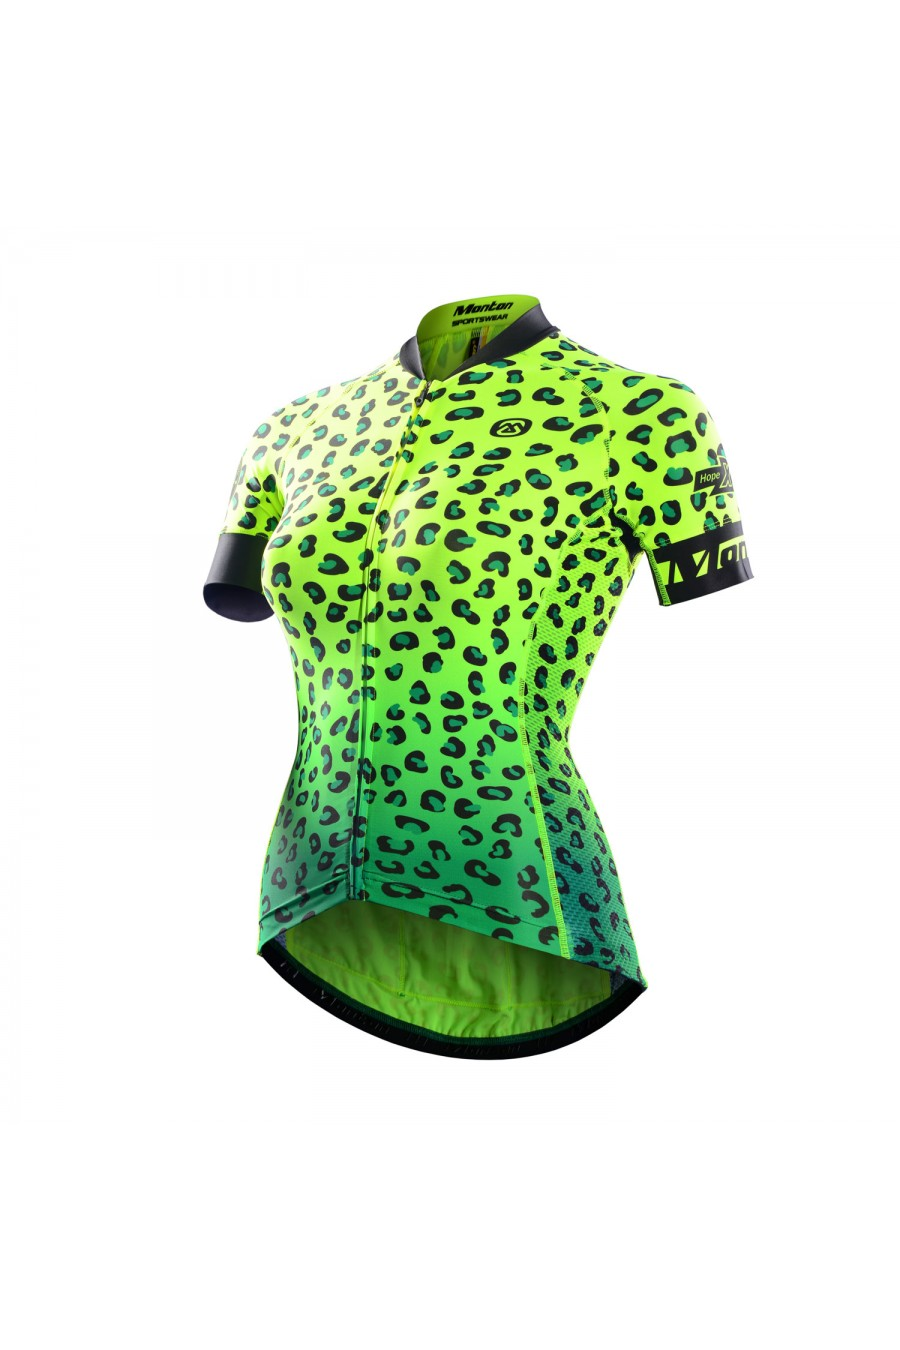 Monton 2016 Women S Short Sleeve Race Fit Fluorescent Cycling